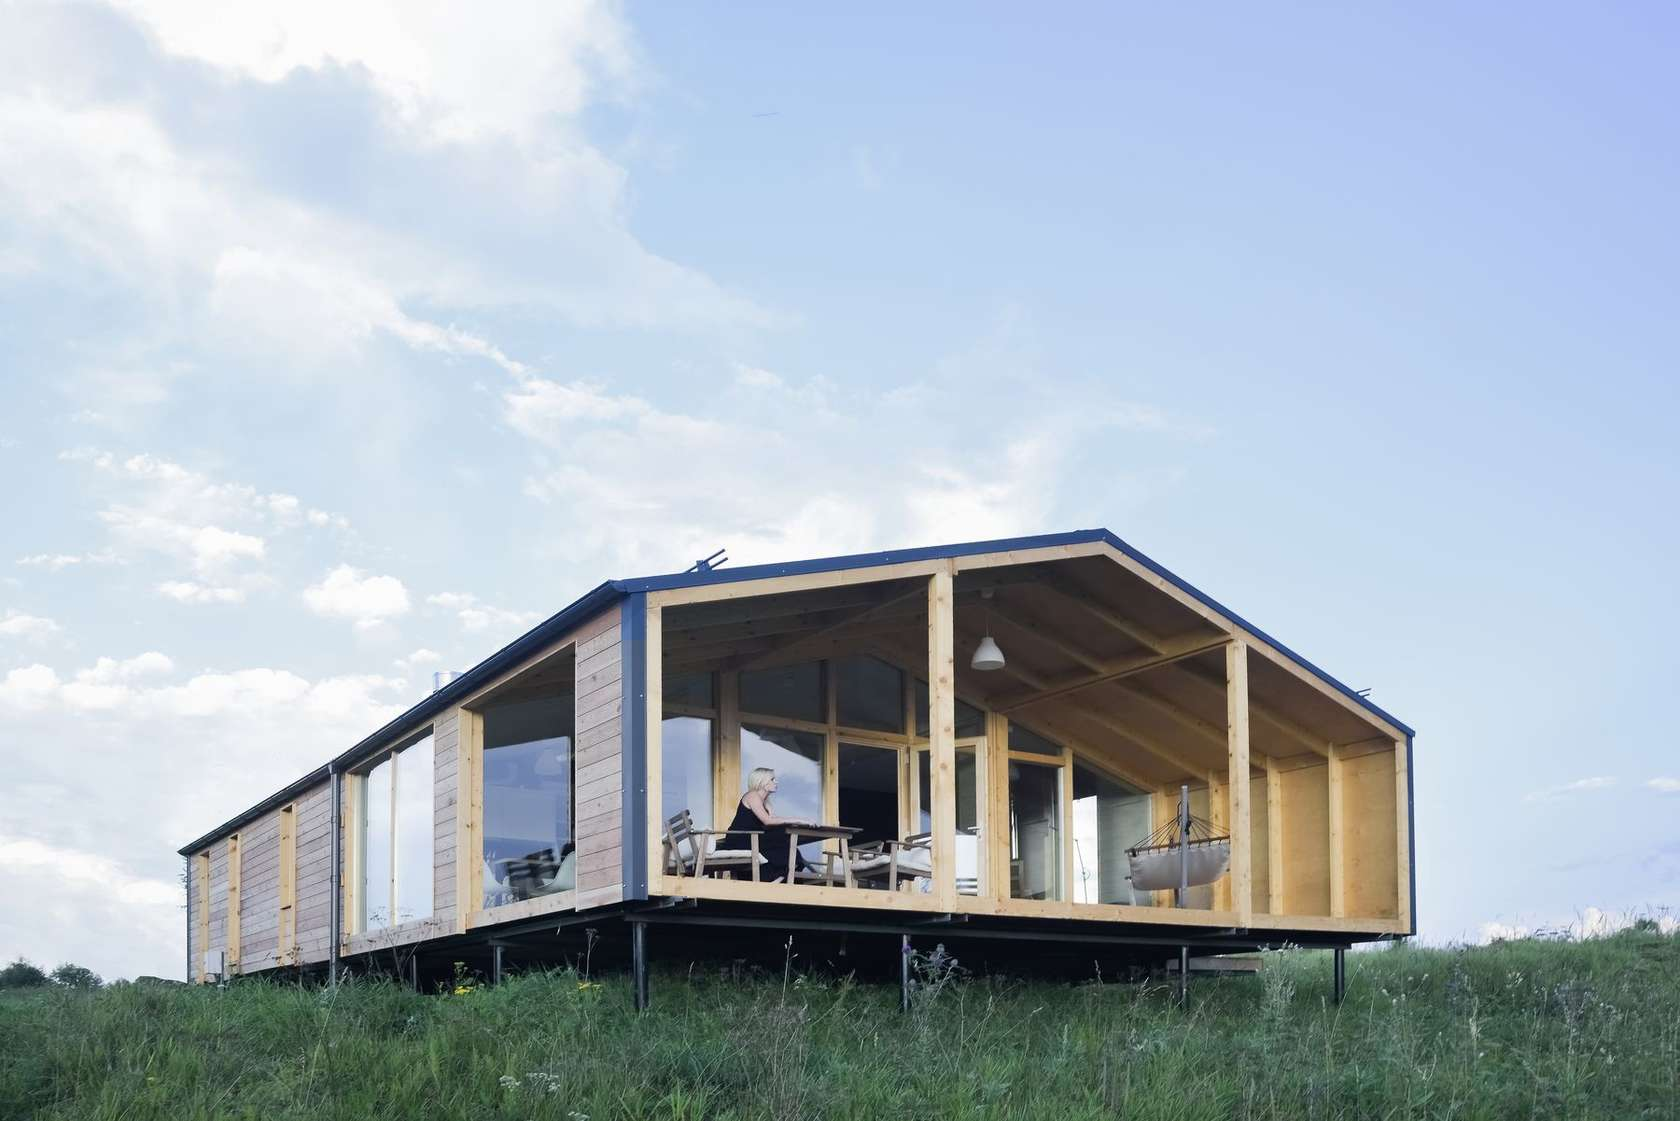 7 prefab homes that impressed us in 2016